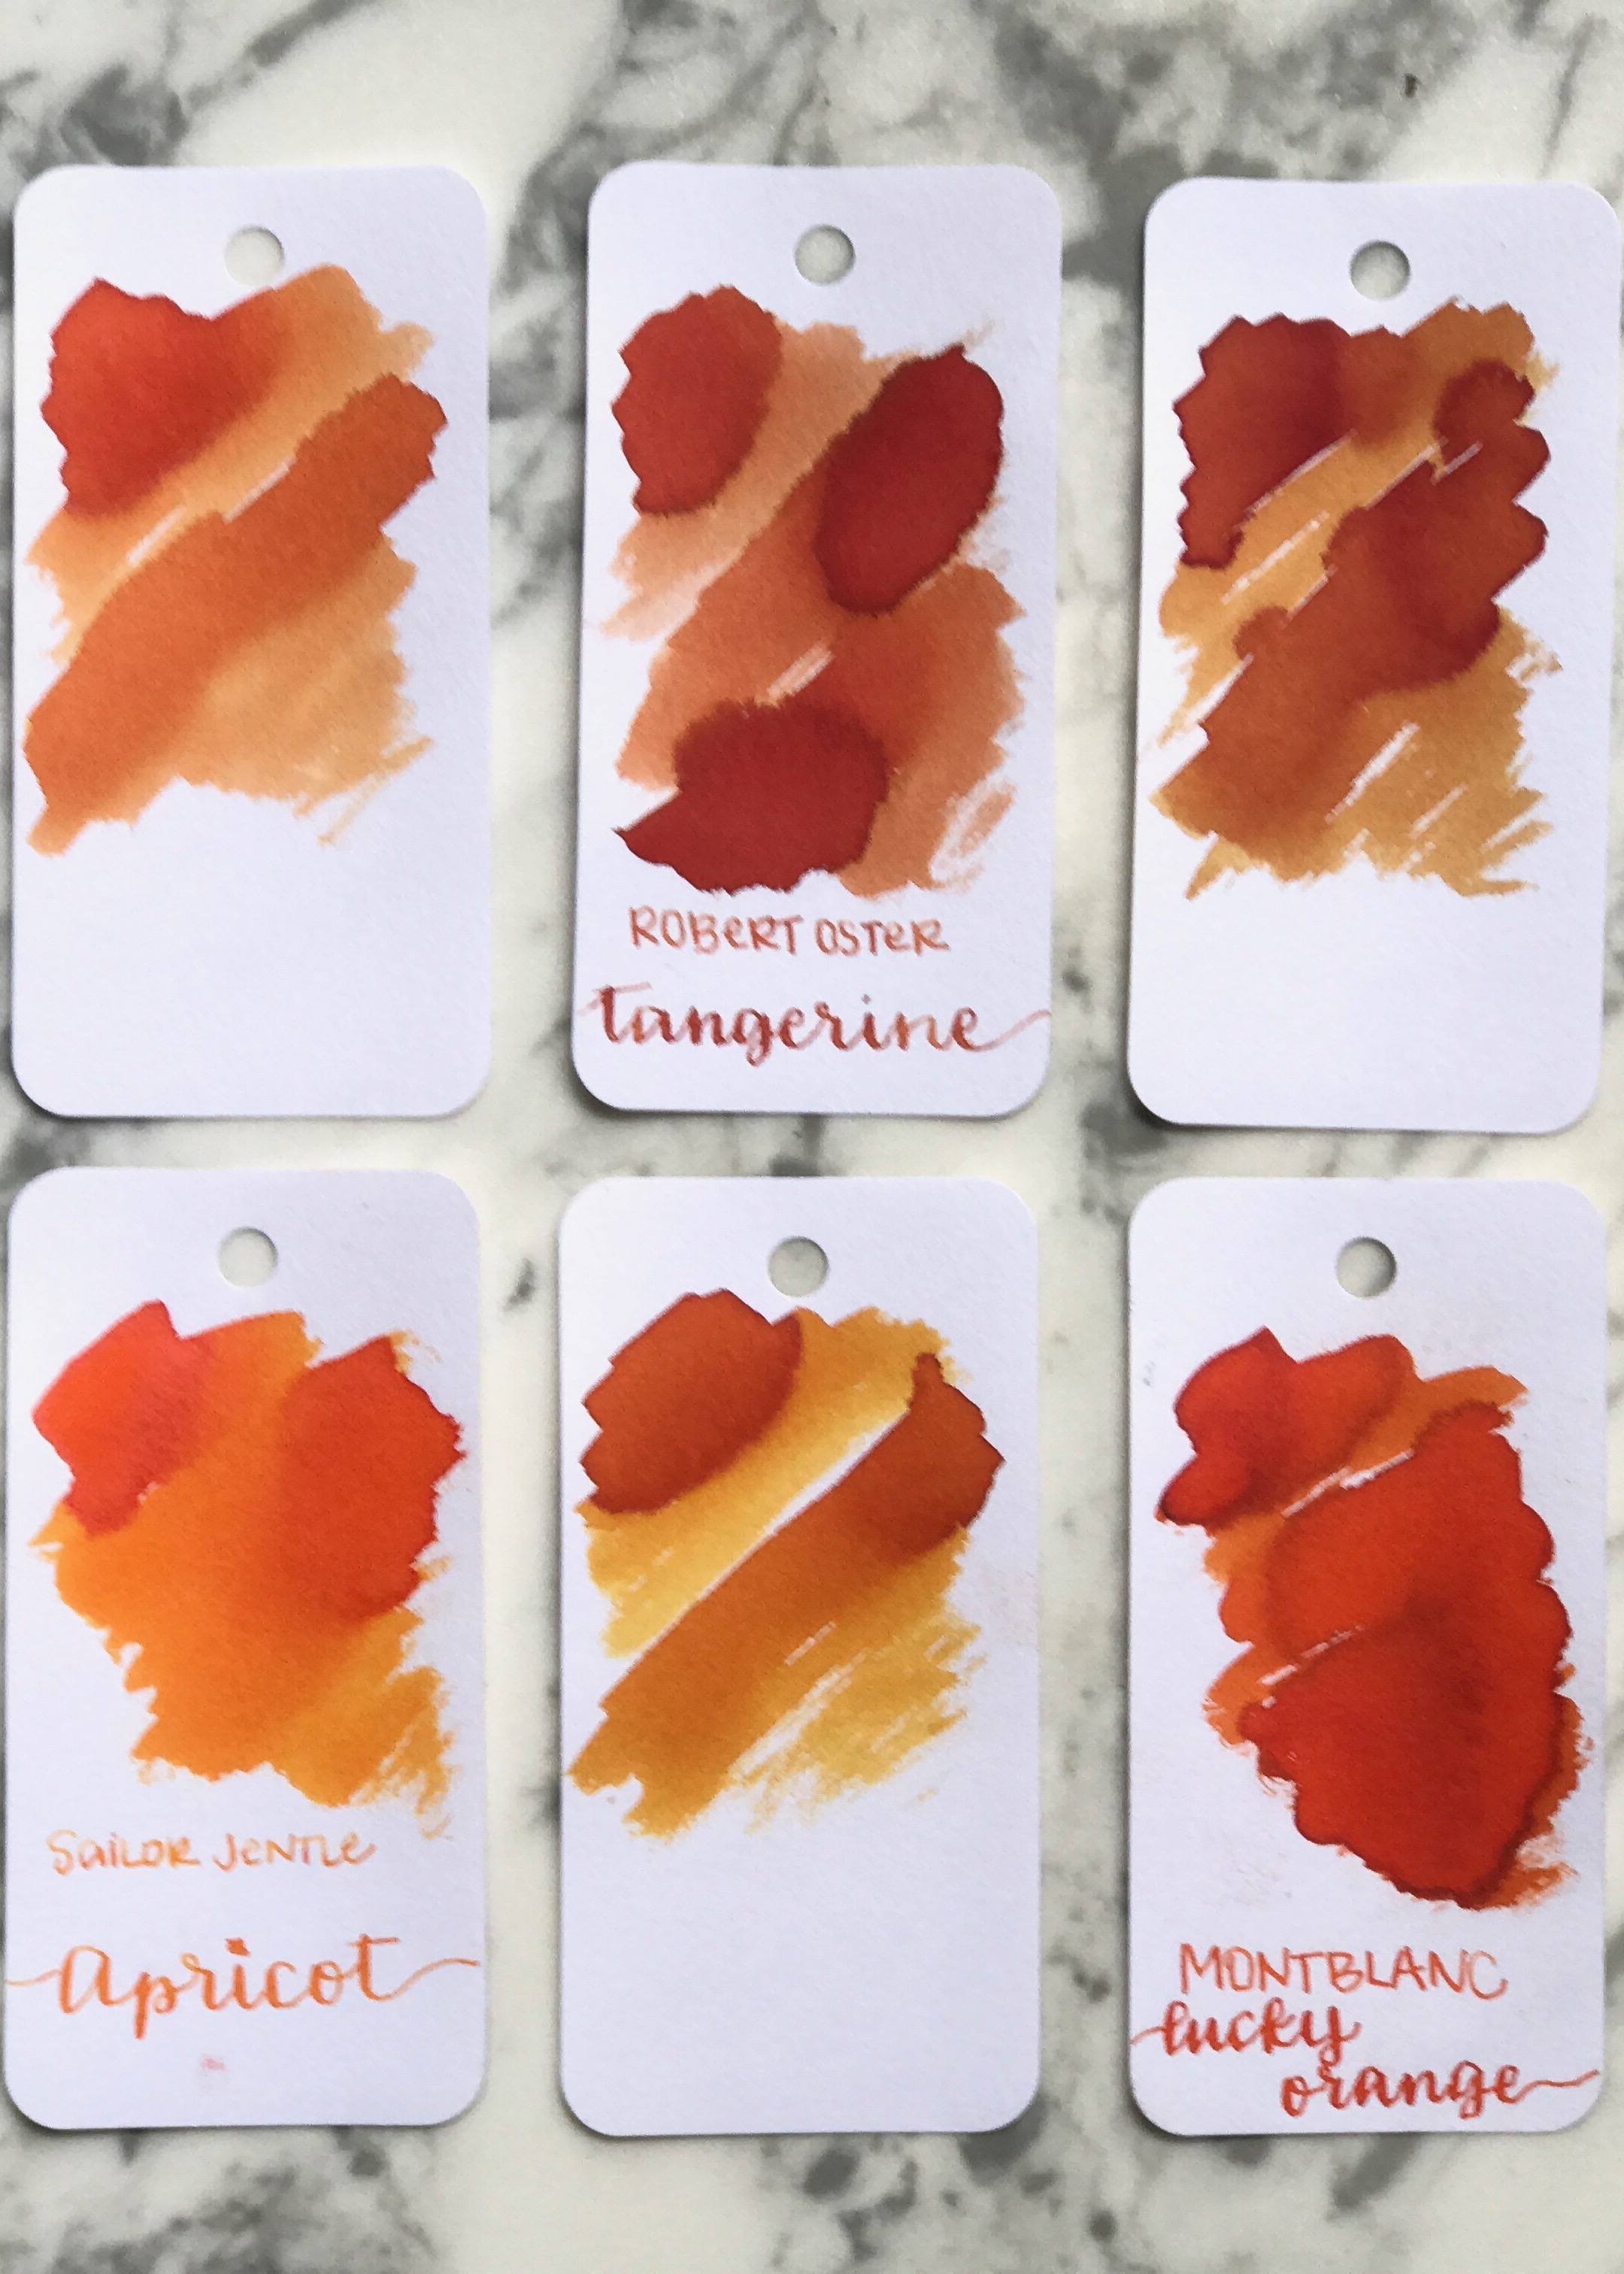 Similar inks: - Top row: left to right, Pilot Iroshizuku Yu-Yake, Robert Oster Tangerine, and Diamine Autumn Oak. Bottom row: Sailor Jentle Apricot, Robert Oster Ng Special '16 and Montblanc Lucky Orange.